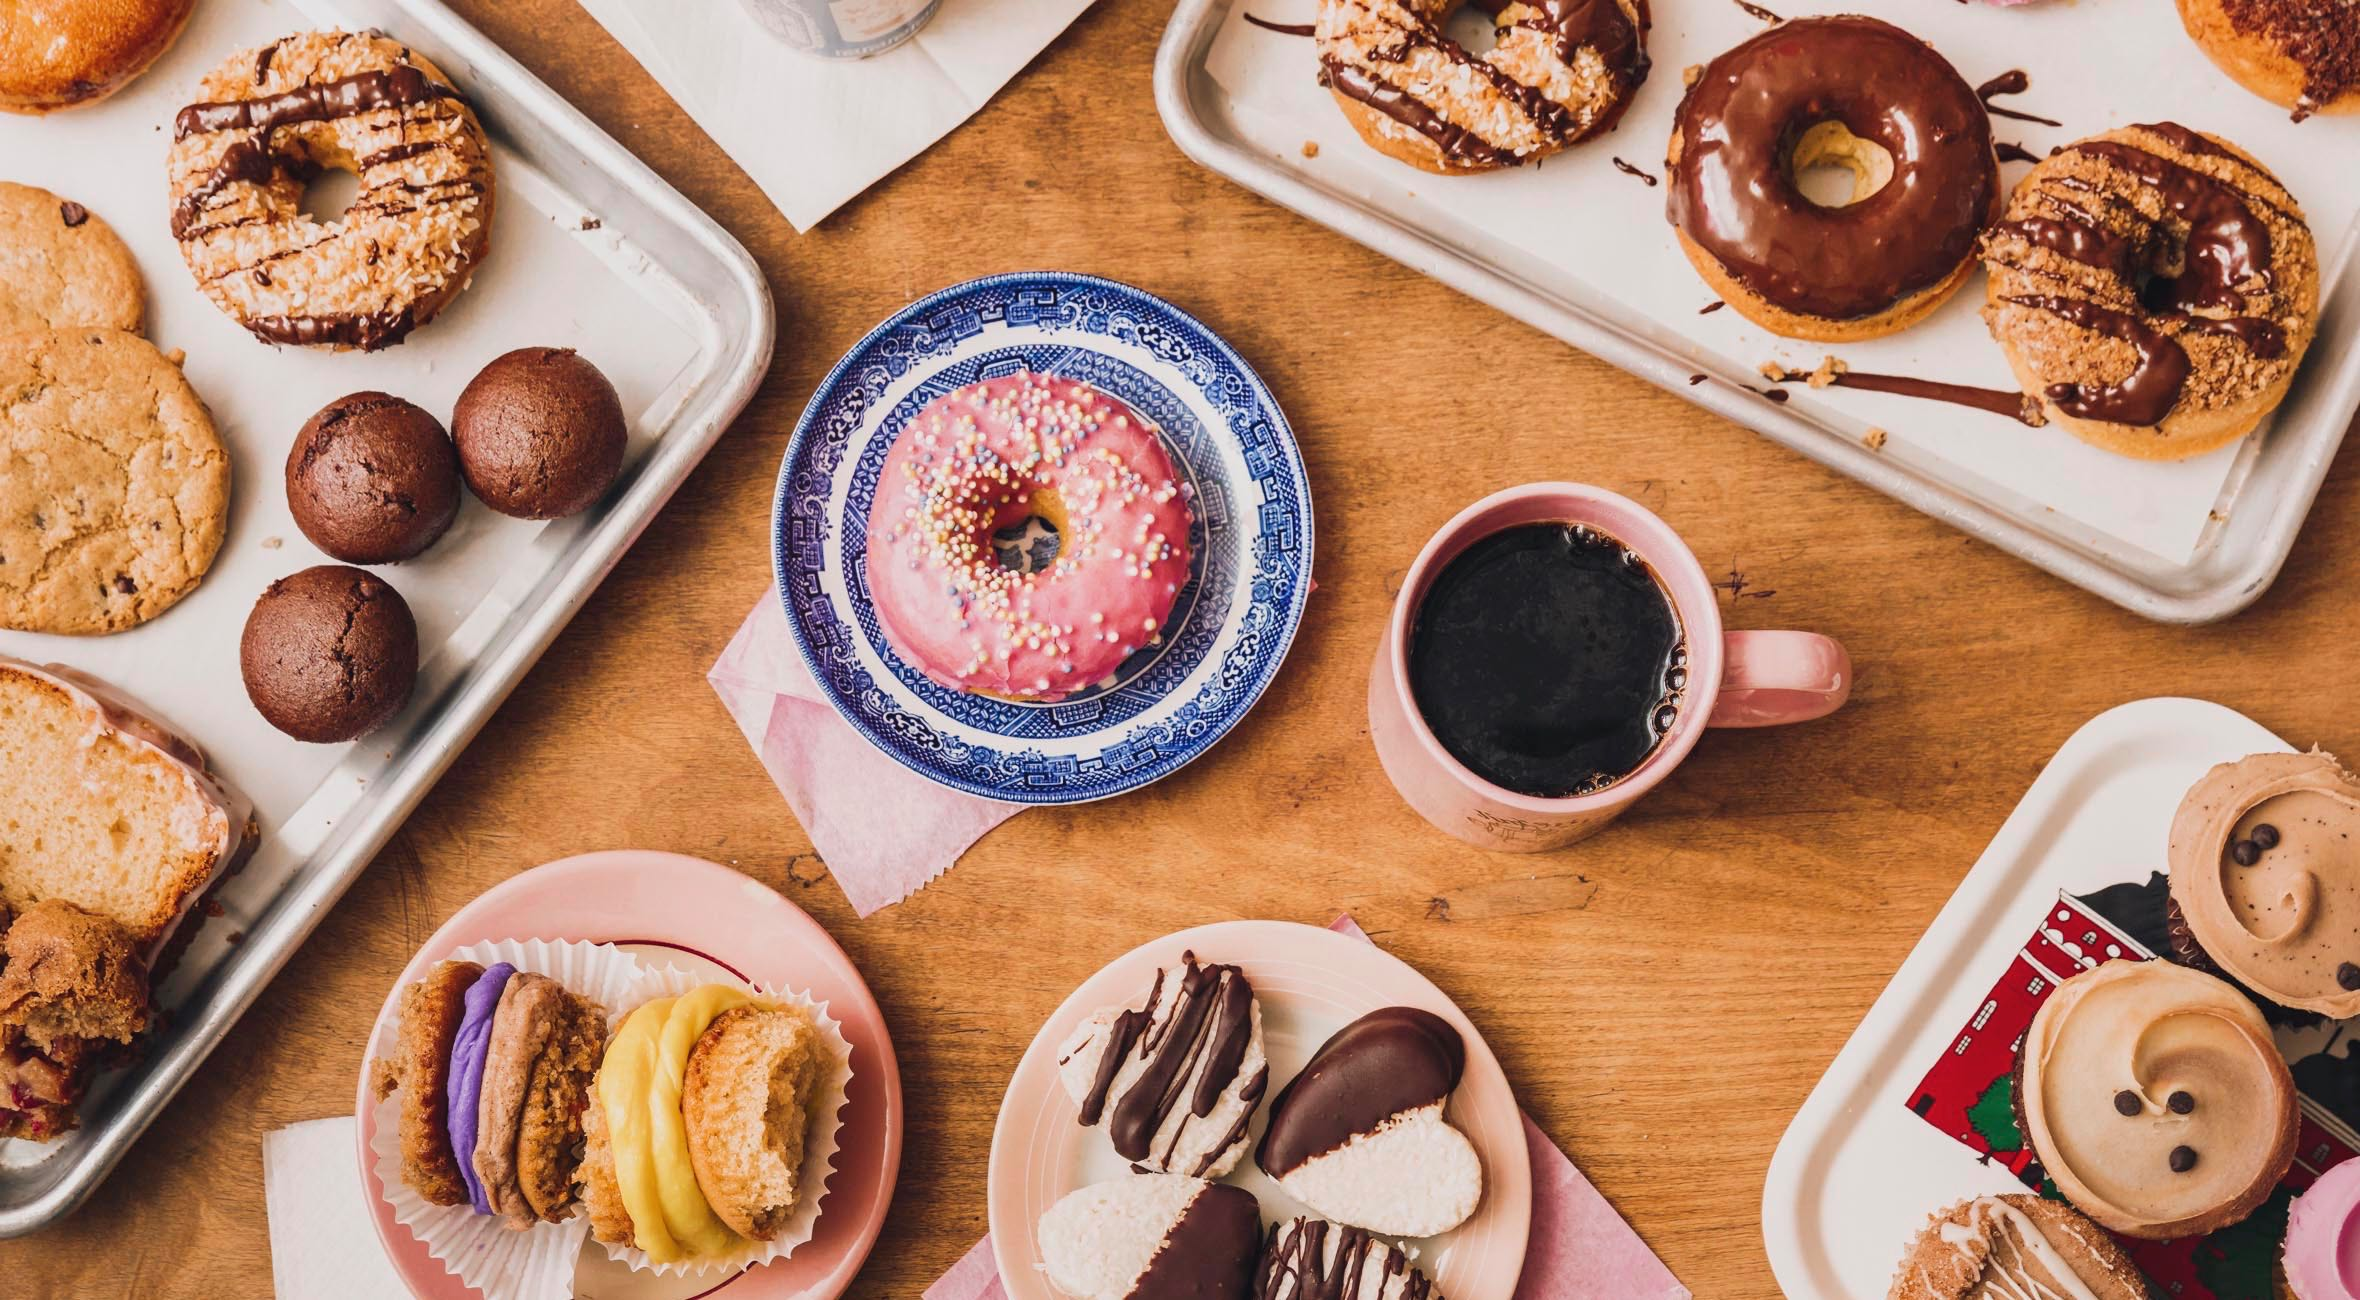 Choose Whatever You Like at Erin McKenna's Bakery – America's Leading Gluten-Free and Vegan Bakery